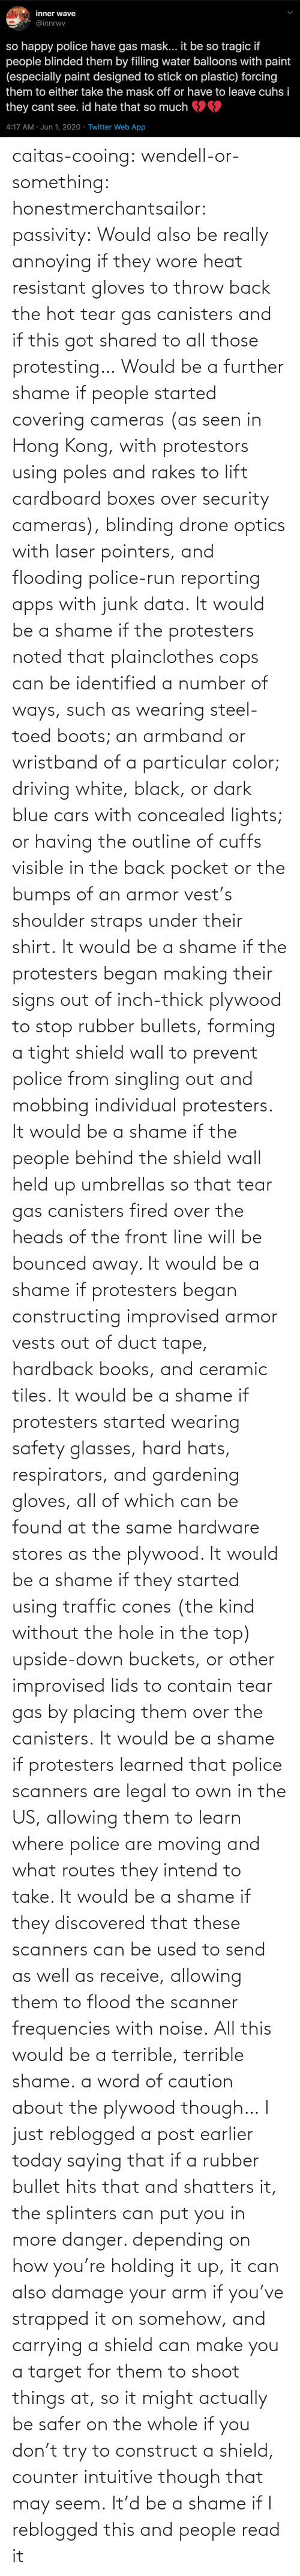 armor: caitas-cooing:  wendell-or-something: honestmerchantsailor:  passivity: Would also be really annoying if they wore heat resistant gloves to throw back the hot tear gas canisters and if this got shared to all those protesting… Would be a further shame if people started covering cameras (as seen in Hong Kong, with protestors using poles and rakes to lift cardboard boxes over security cameras), blinding drone optics with laser pointers, and flooding police-run reporting apps with junk data. It would be a shame if the protesters noted that plainclothes cops can be identified a number of ways, such as wearing steel-toed boots; an armband or wristband of a particular color; driving white, black, or dark blue cars with concealed lights; or having the outline of cuffs visible in the back pocket or the bumps of an armor vest's shoulder straps under their shirt. It would be a shame if the protesters began making their signs out of inch-thick plywood to stop rubber bullets, forming a tight shield wall to prevent police from singling out and mobbing individual protesters. It would be a shame if the people behind the shield wall held up umbrellas so that tear gas canisters fired over the heads of the front line will be bounced away. It would be a shame if protesters began constructing improvised armor vests out of duct tape, hardback books, and ceramic tiles. It would be a shame if protesters started wearing safety glasses, hard hats, respirators, and gardening gloves, all of which can be found at the same hardware stores as the plywood. It would be a shame if they started using traffic cones (the kind without the hole in the top) upside-down buckets, or other improvised lids to contain tear gas by placing them over the canisters. It would be a shame if protesters learned that police scanners are legal to own in the US, allowing them to learn where police are moving and what routes they intend to take. It would be a shame if they discovered that these scanners can be used to send as well as receive, allowing them to flood the scanner frequencies with noise. All this would be a terrible, terrible shame.    a word of caution about the plywood though… I just reblogged a post earlier today saying that if a rubber bullet hits that and shatters it, the splinters can put you in more danger. depending on how you're holding it up, it can also damage your arm if you've strapped it on somehow, and carrying a shield can make you a target for them to shoot things at, so it might actually be safer on the whole if you don't try to construct a shield, counter intuitive though that may seem.    It'd be a shame if I reblogged this and people read it